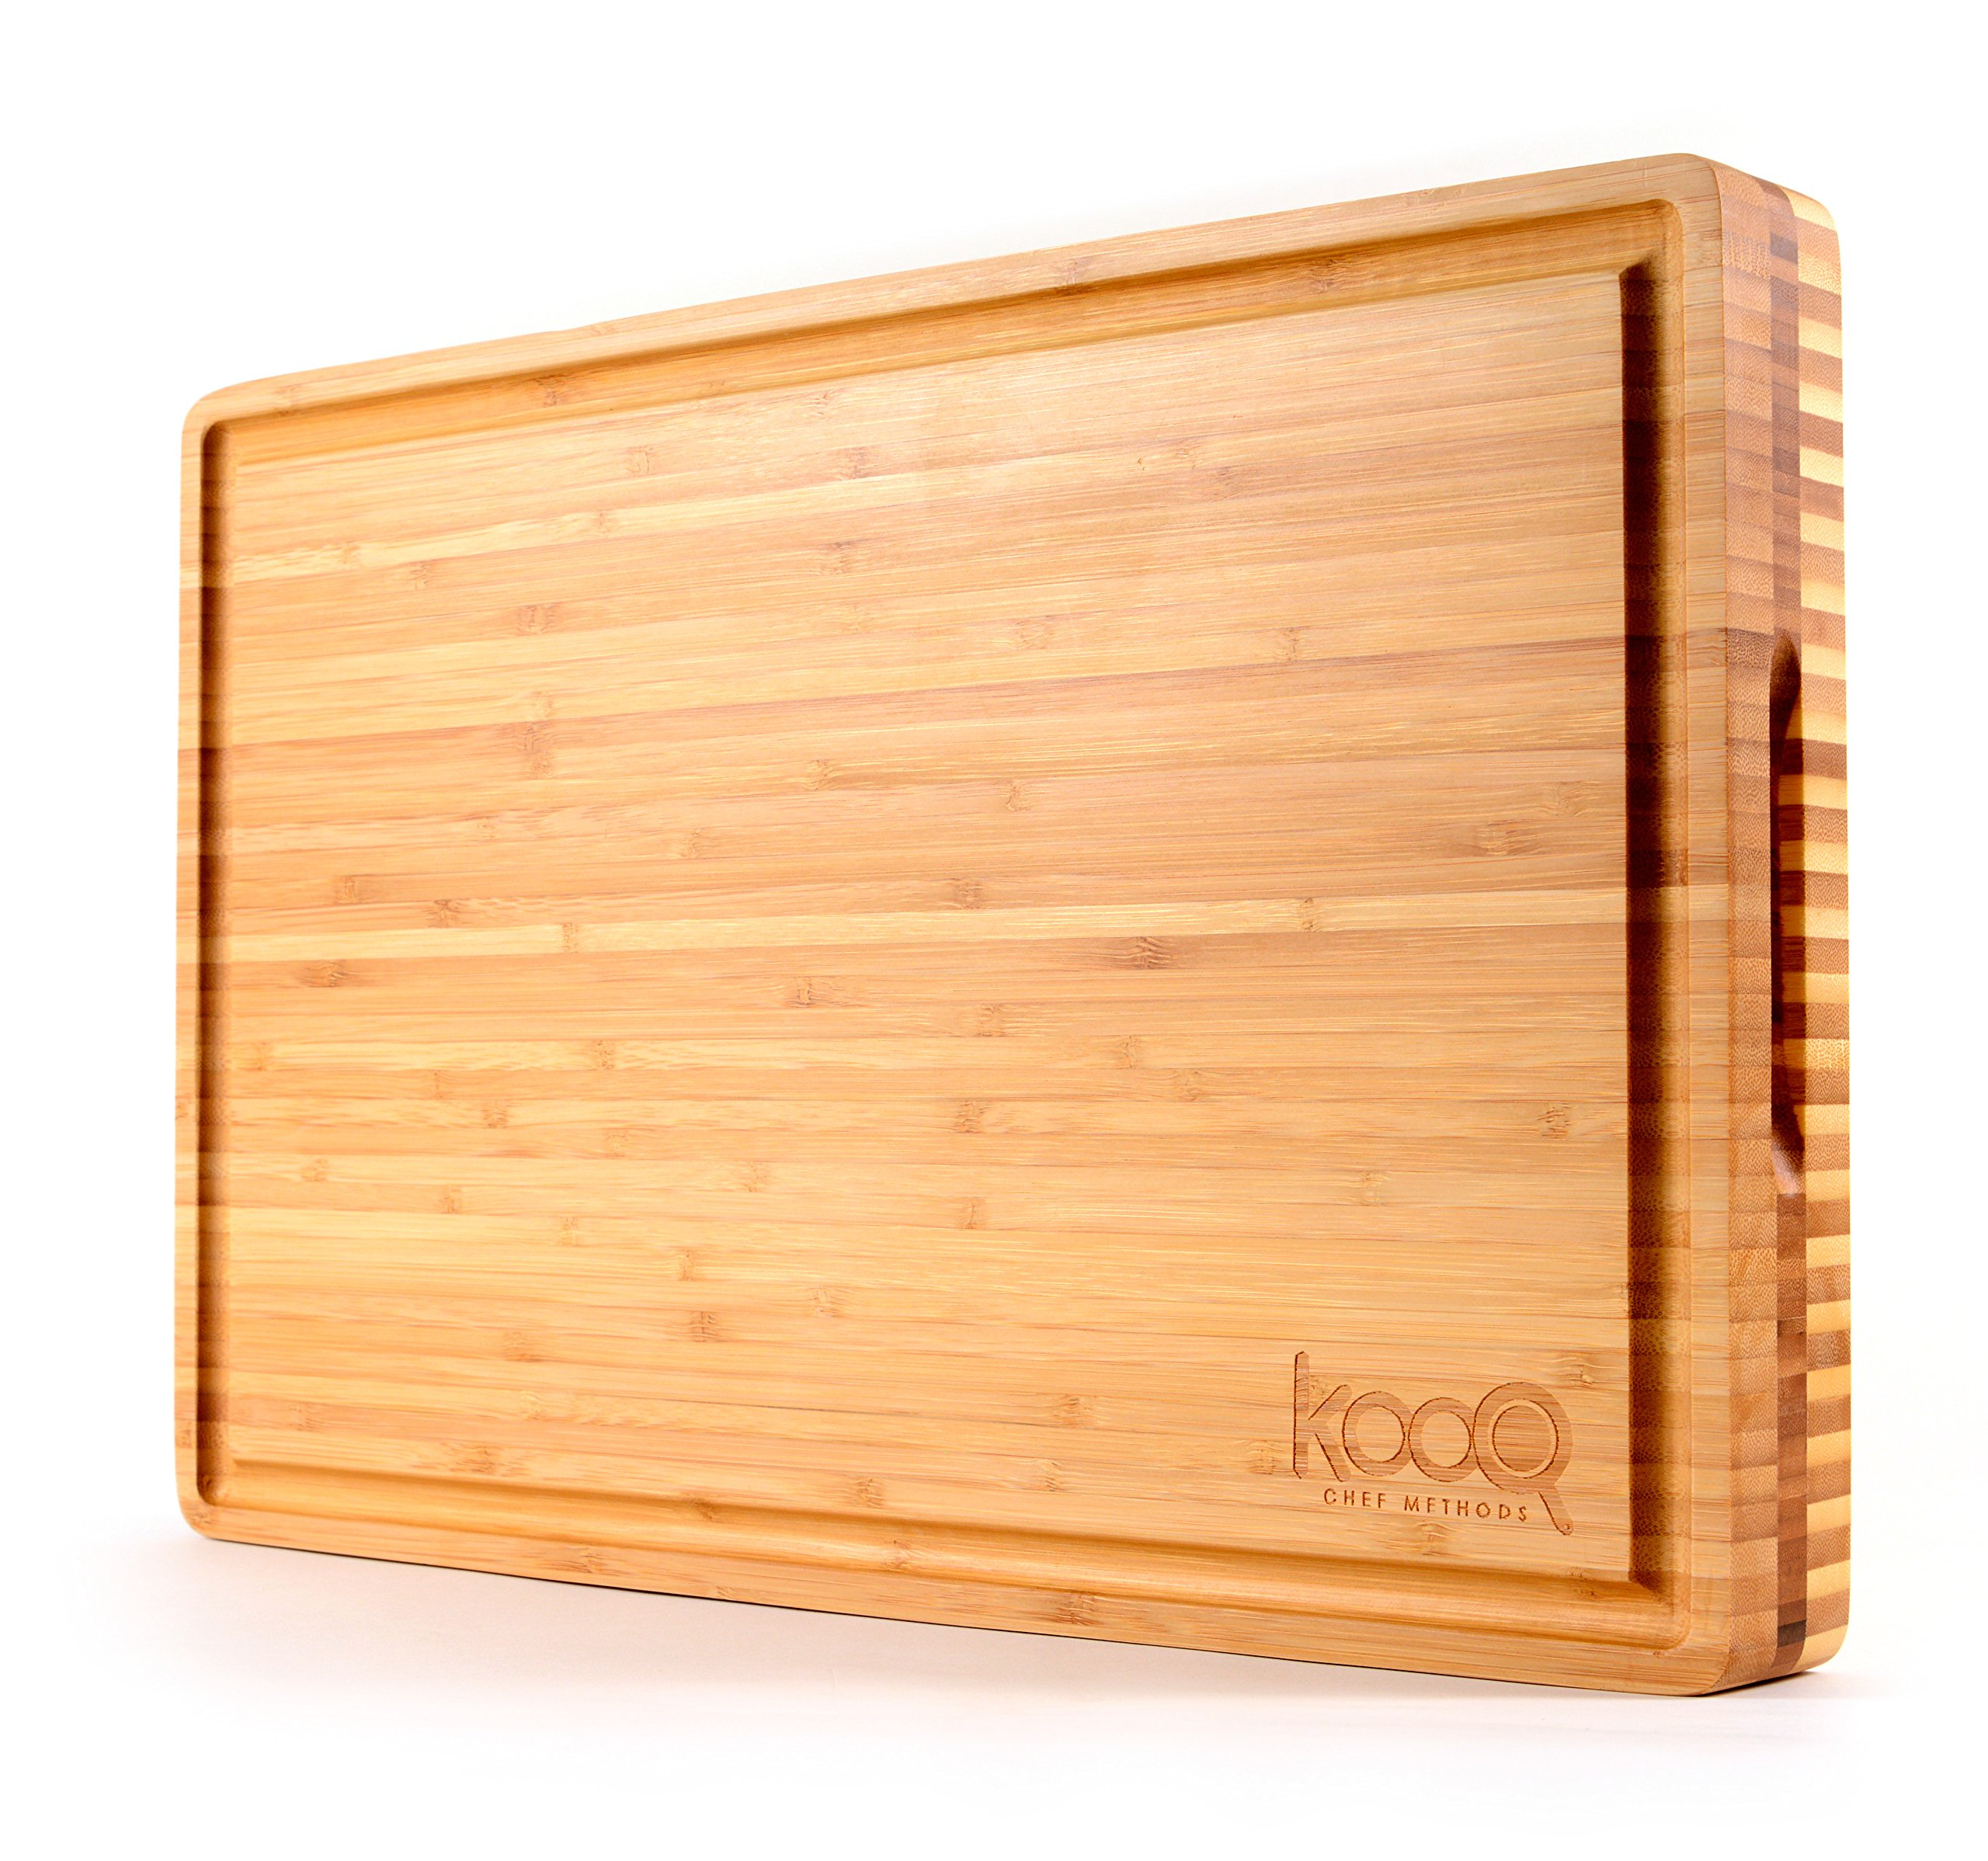 "The BEST Reversible Cutting Board - Perfect Serving Board on the market! Strong and sturdy Cutting Board on one side for cutting and chopping. (Extra Large - 18"" by 12"" and 2"" thick) by KOOQ"